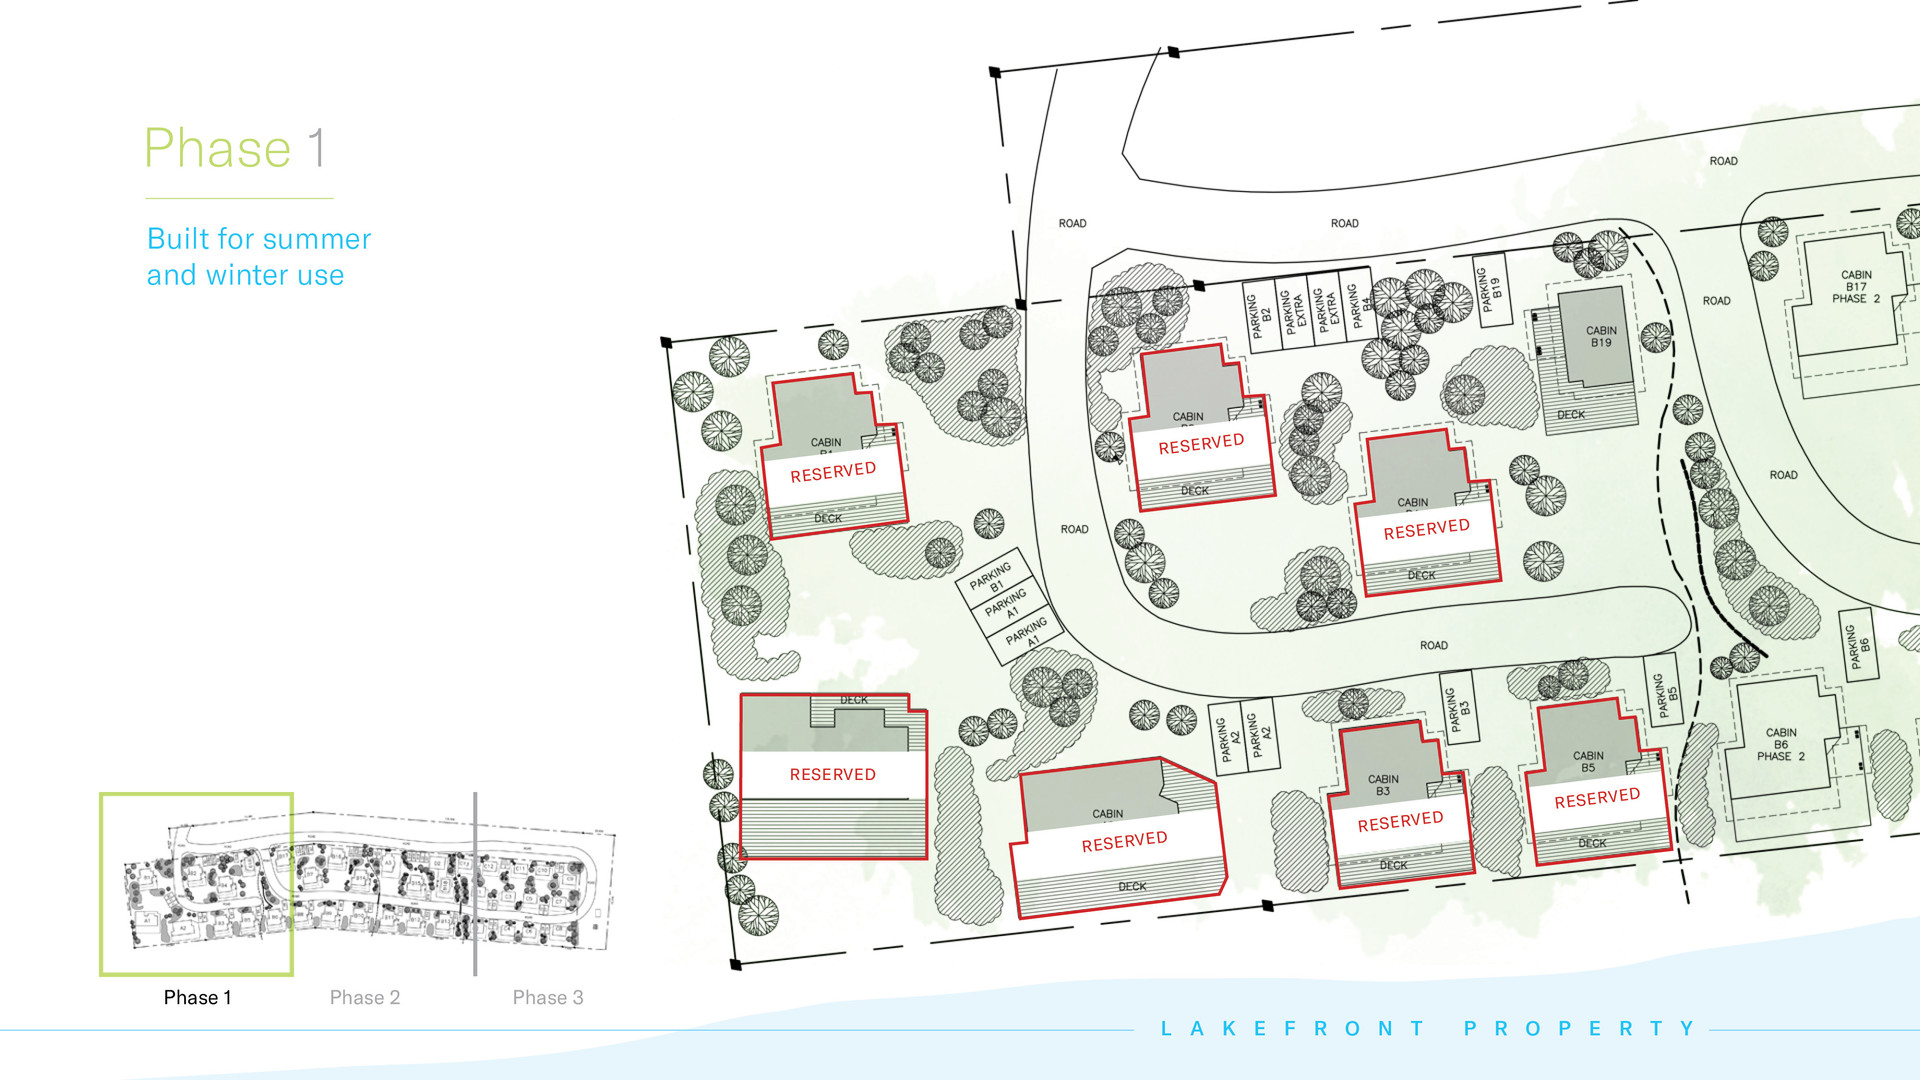 Kapasiwin Bungalows - Phase 1 planned construction 2021